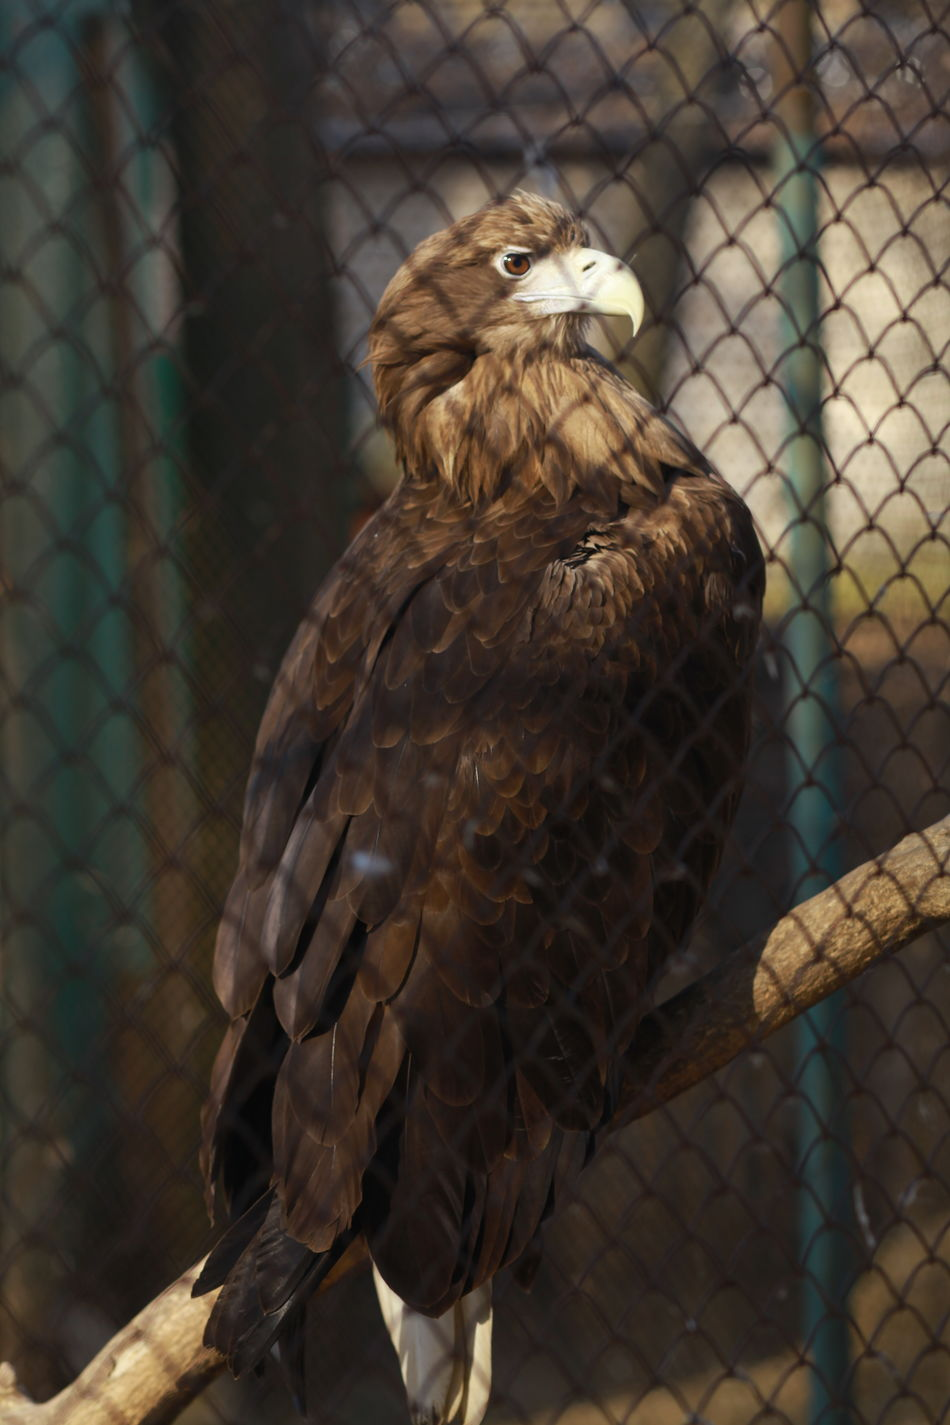 Animal Themes Animal Wildlife Animals In The Wild Bird Bird Of Prey Day Eagle Eagle - Bird Eagles Nature No People One Animal Outdoors Perching